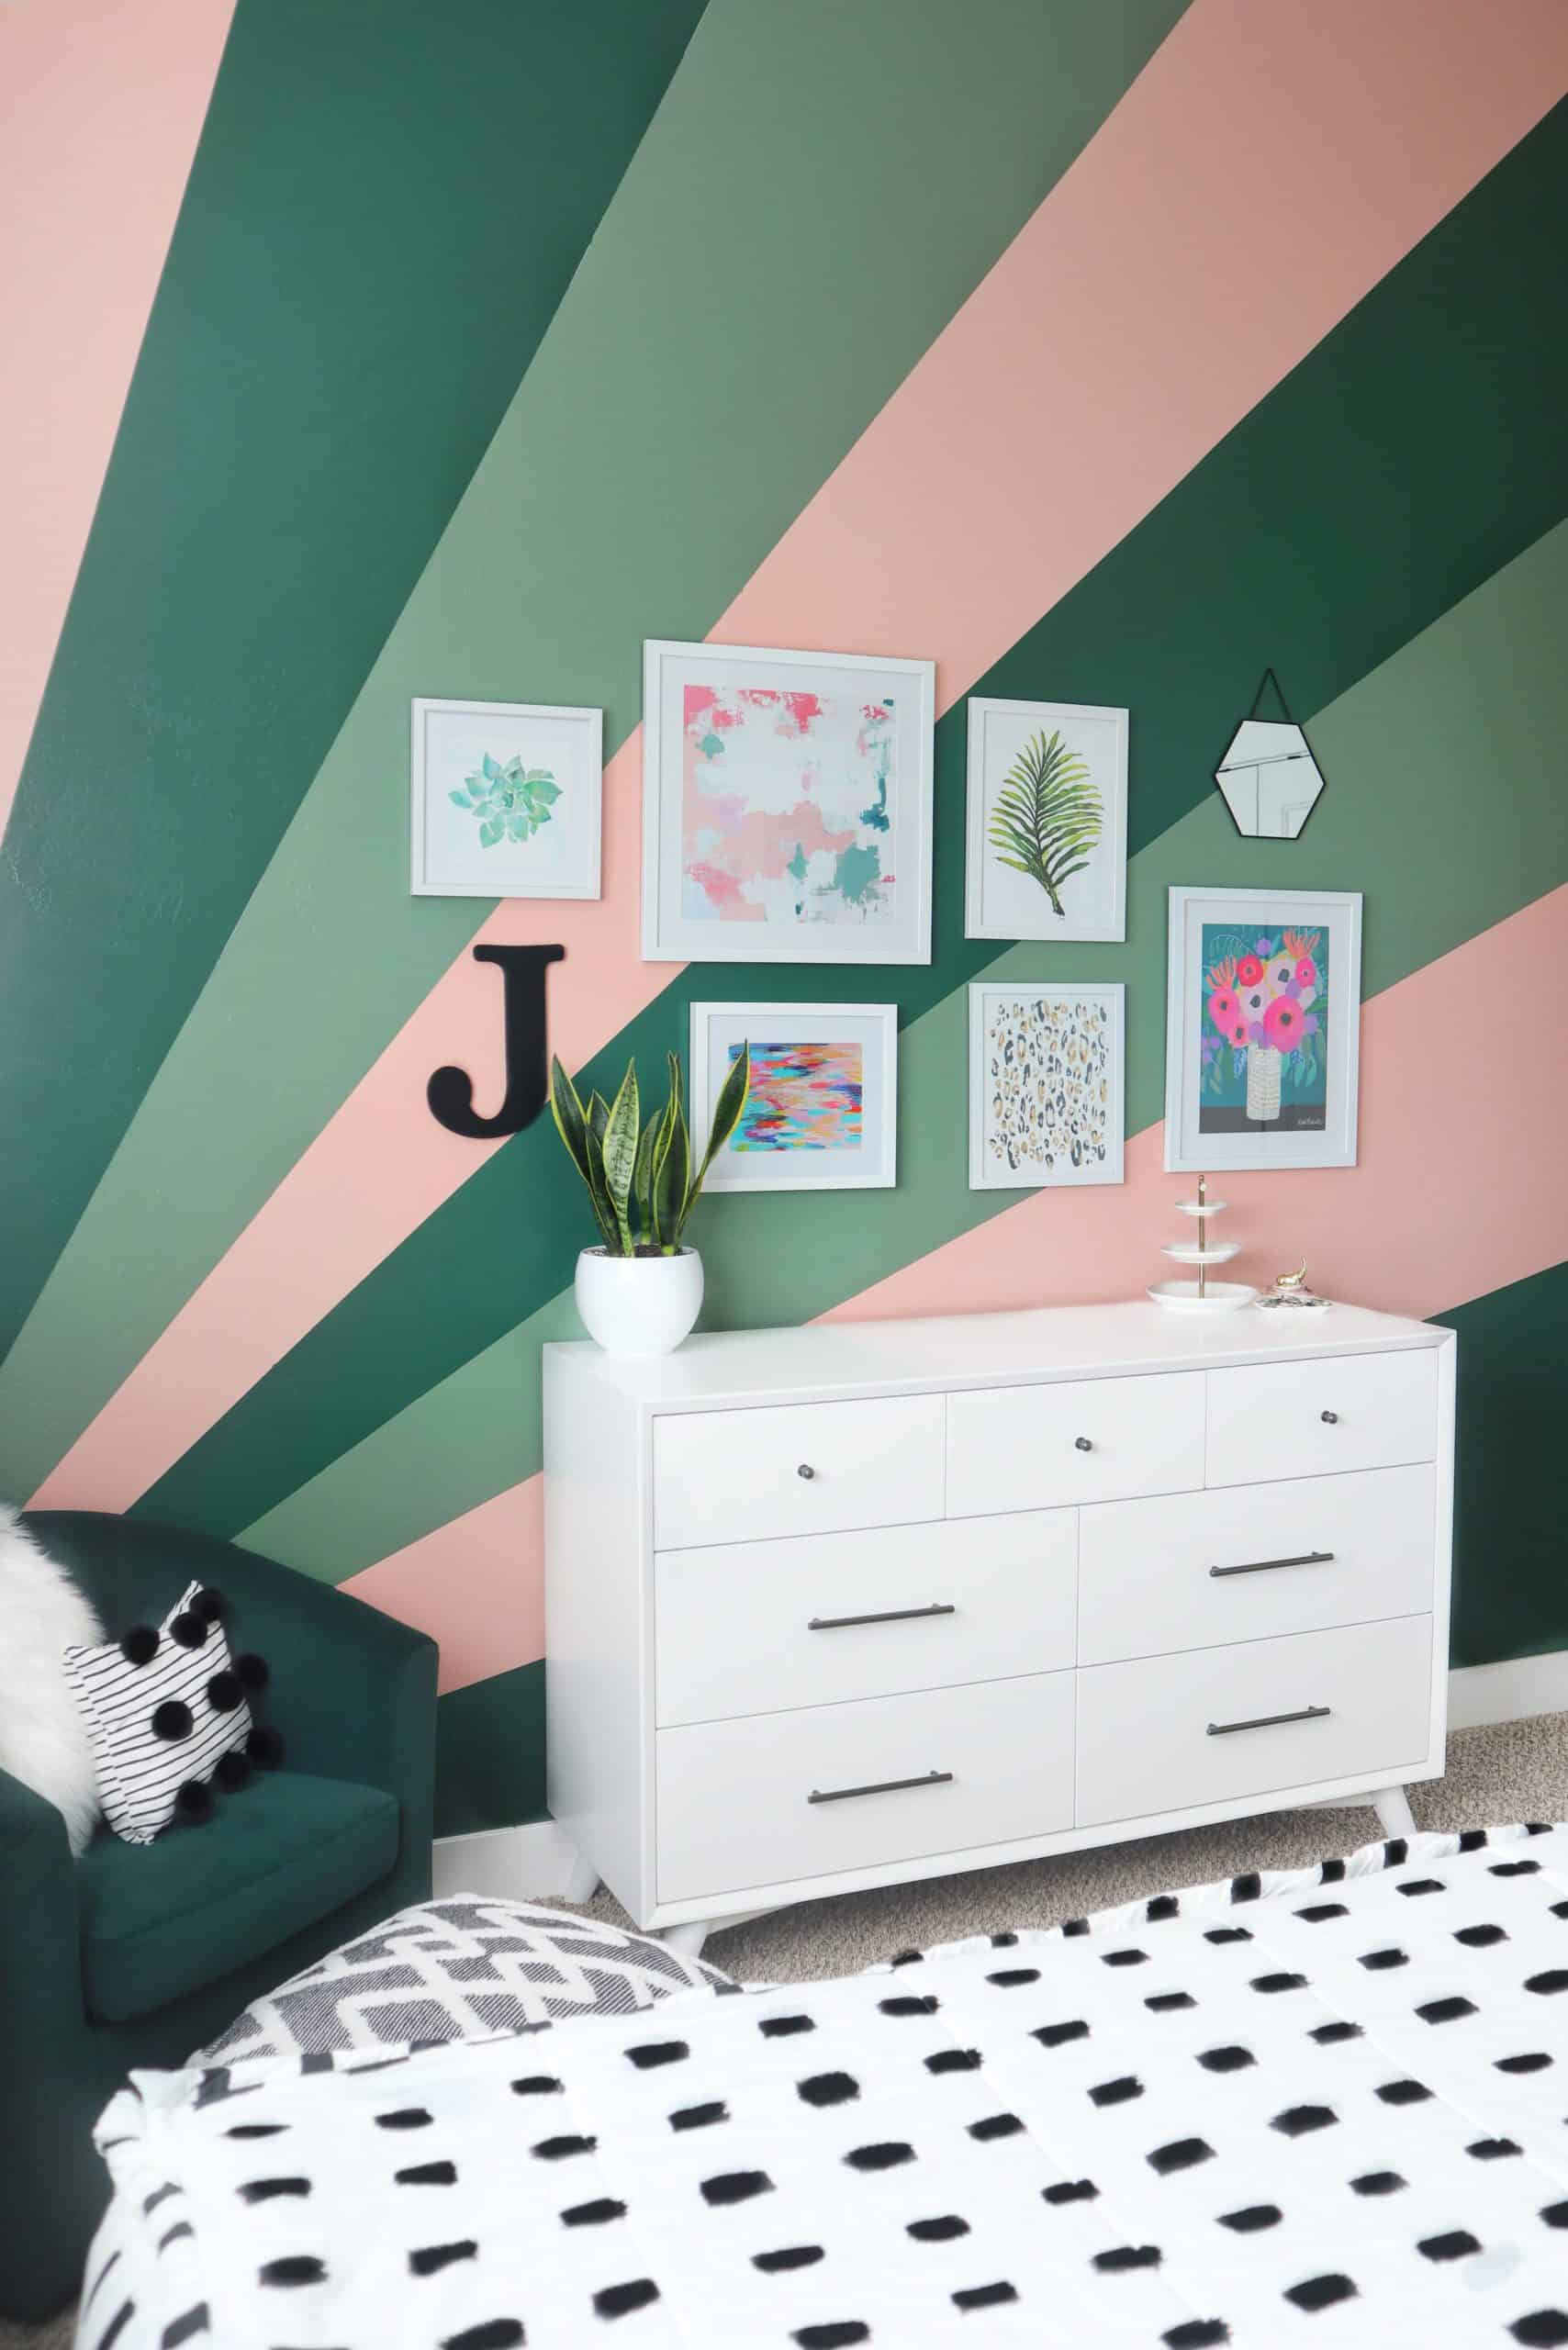 Teen Bedroom Makeover - Sunburst Finished Accent Wall - House of Smiths